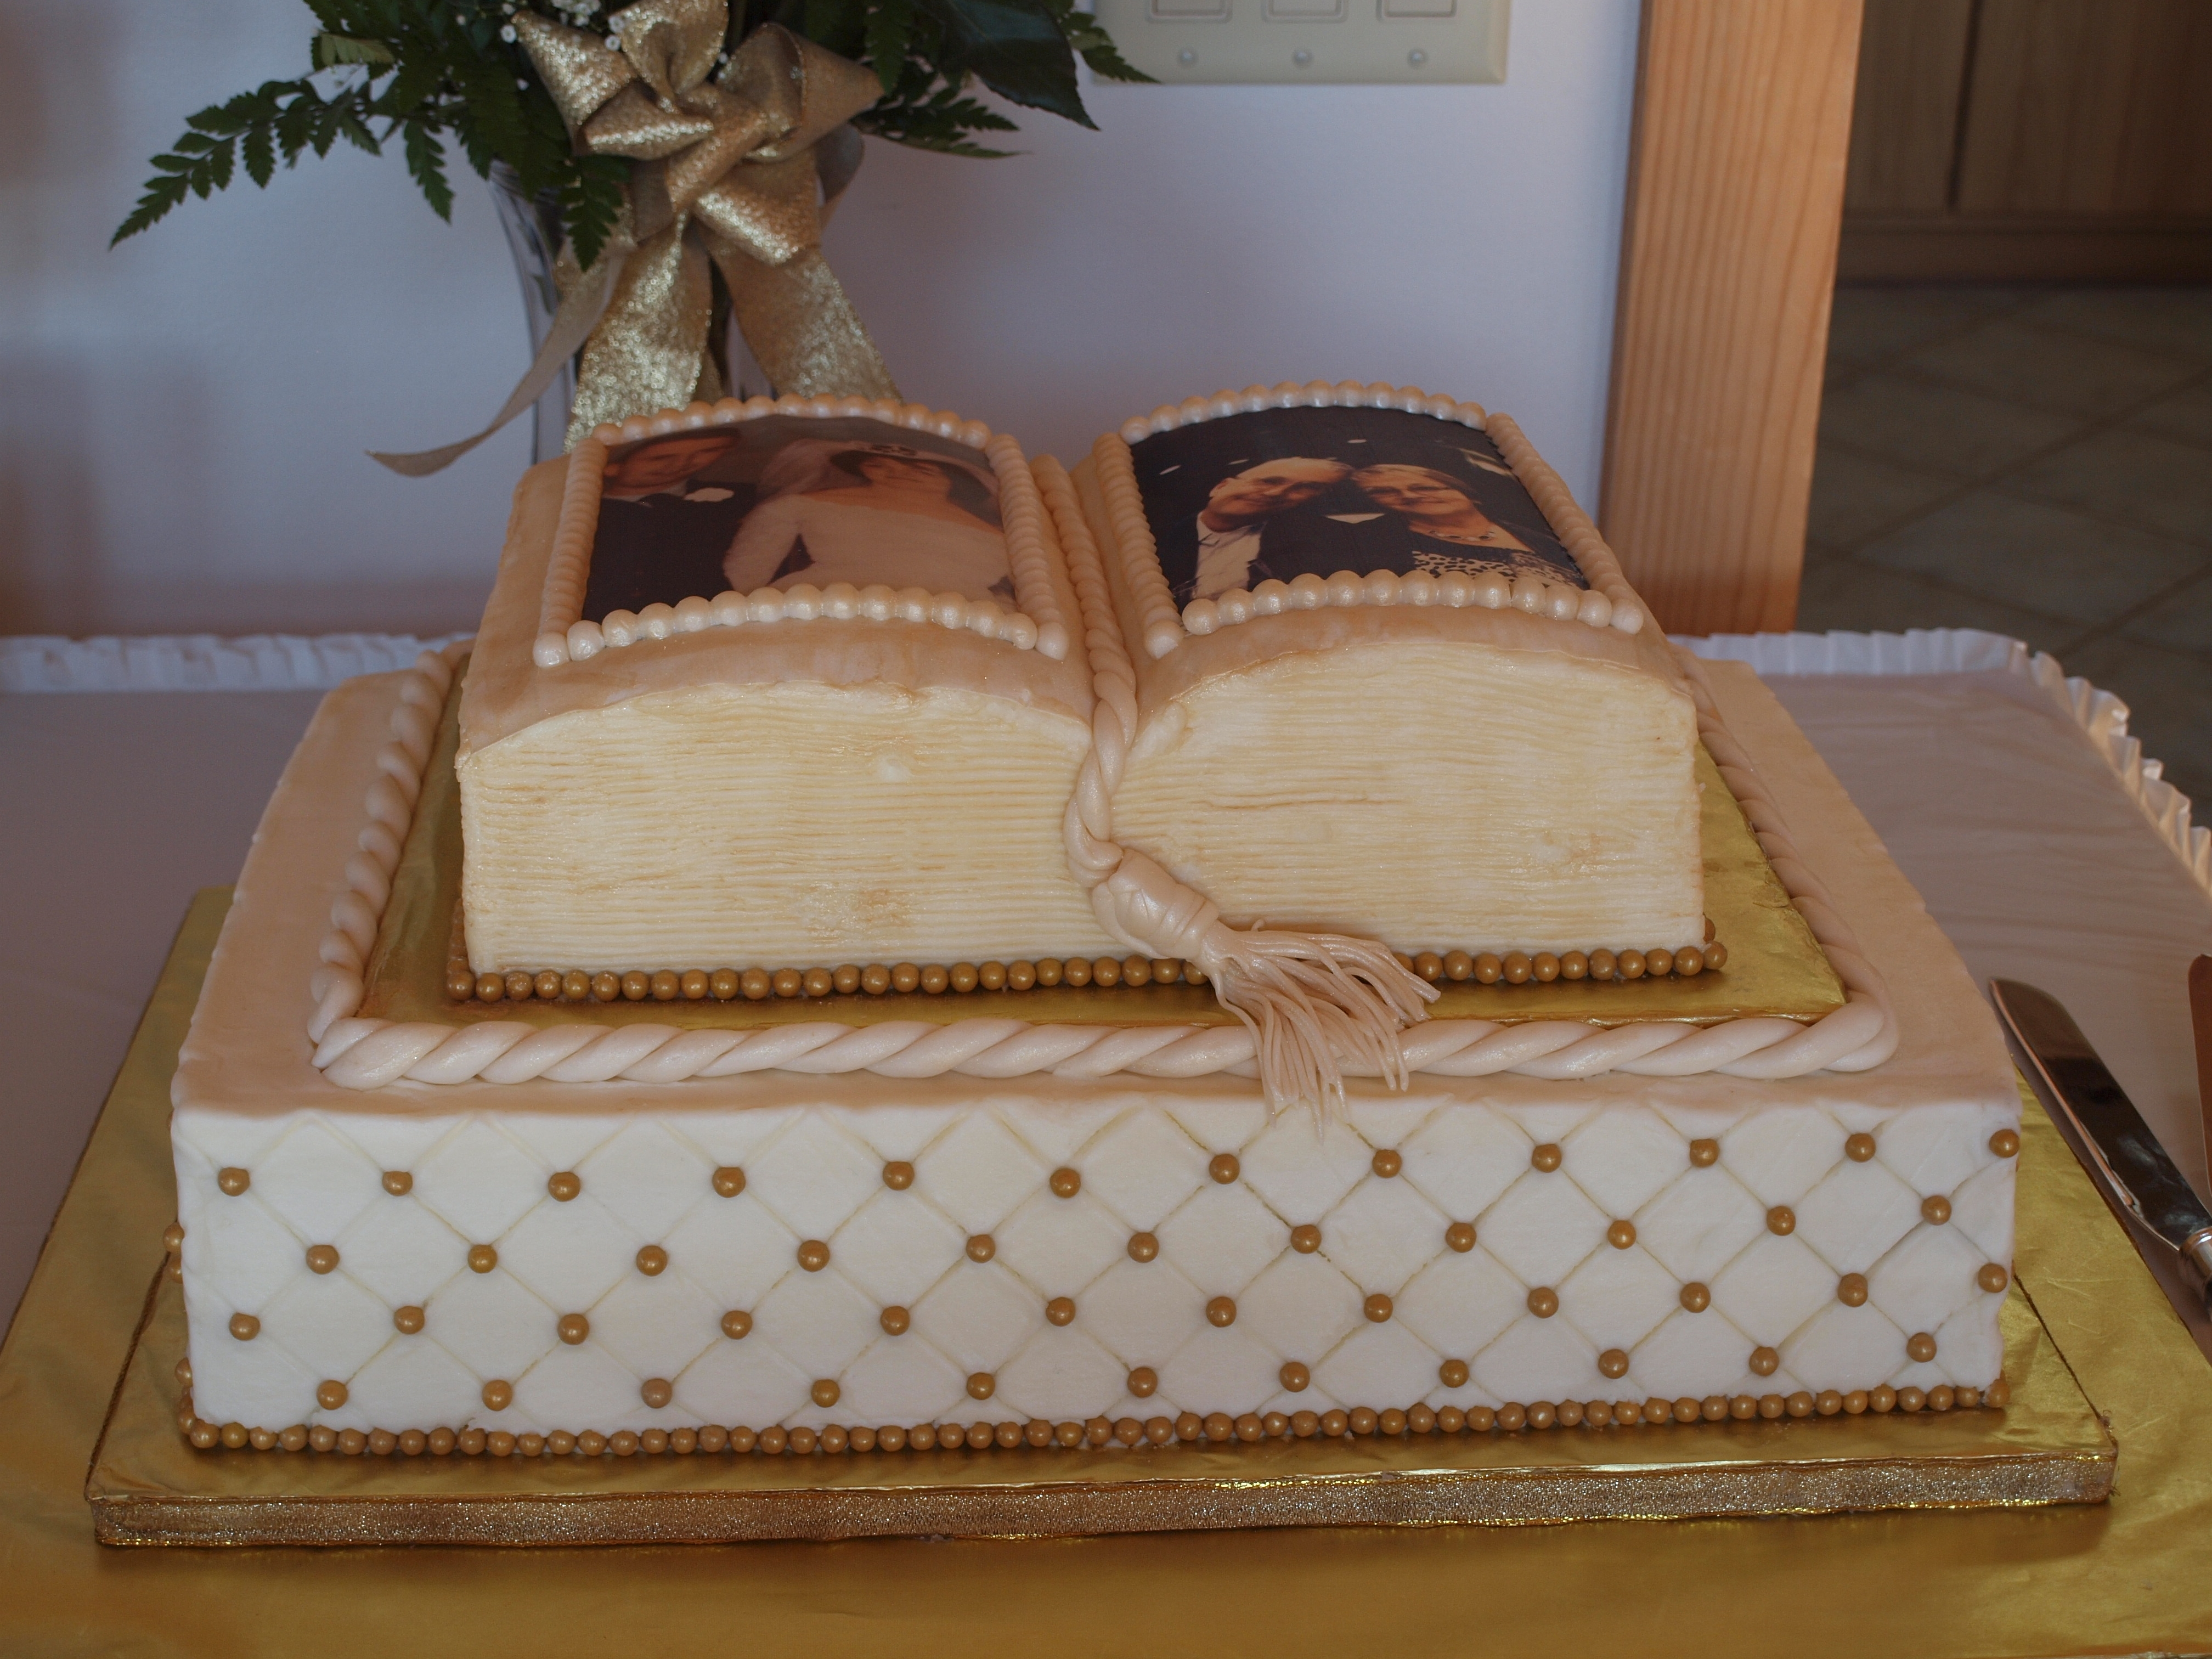 Th wedding anniversary cake this is a sheet cake with an